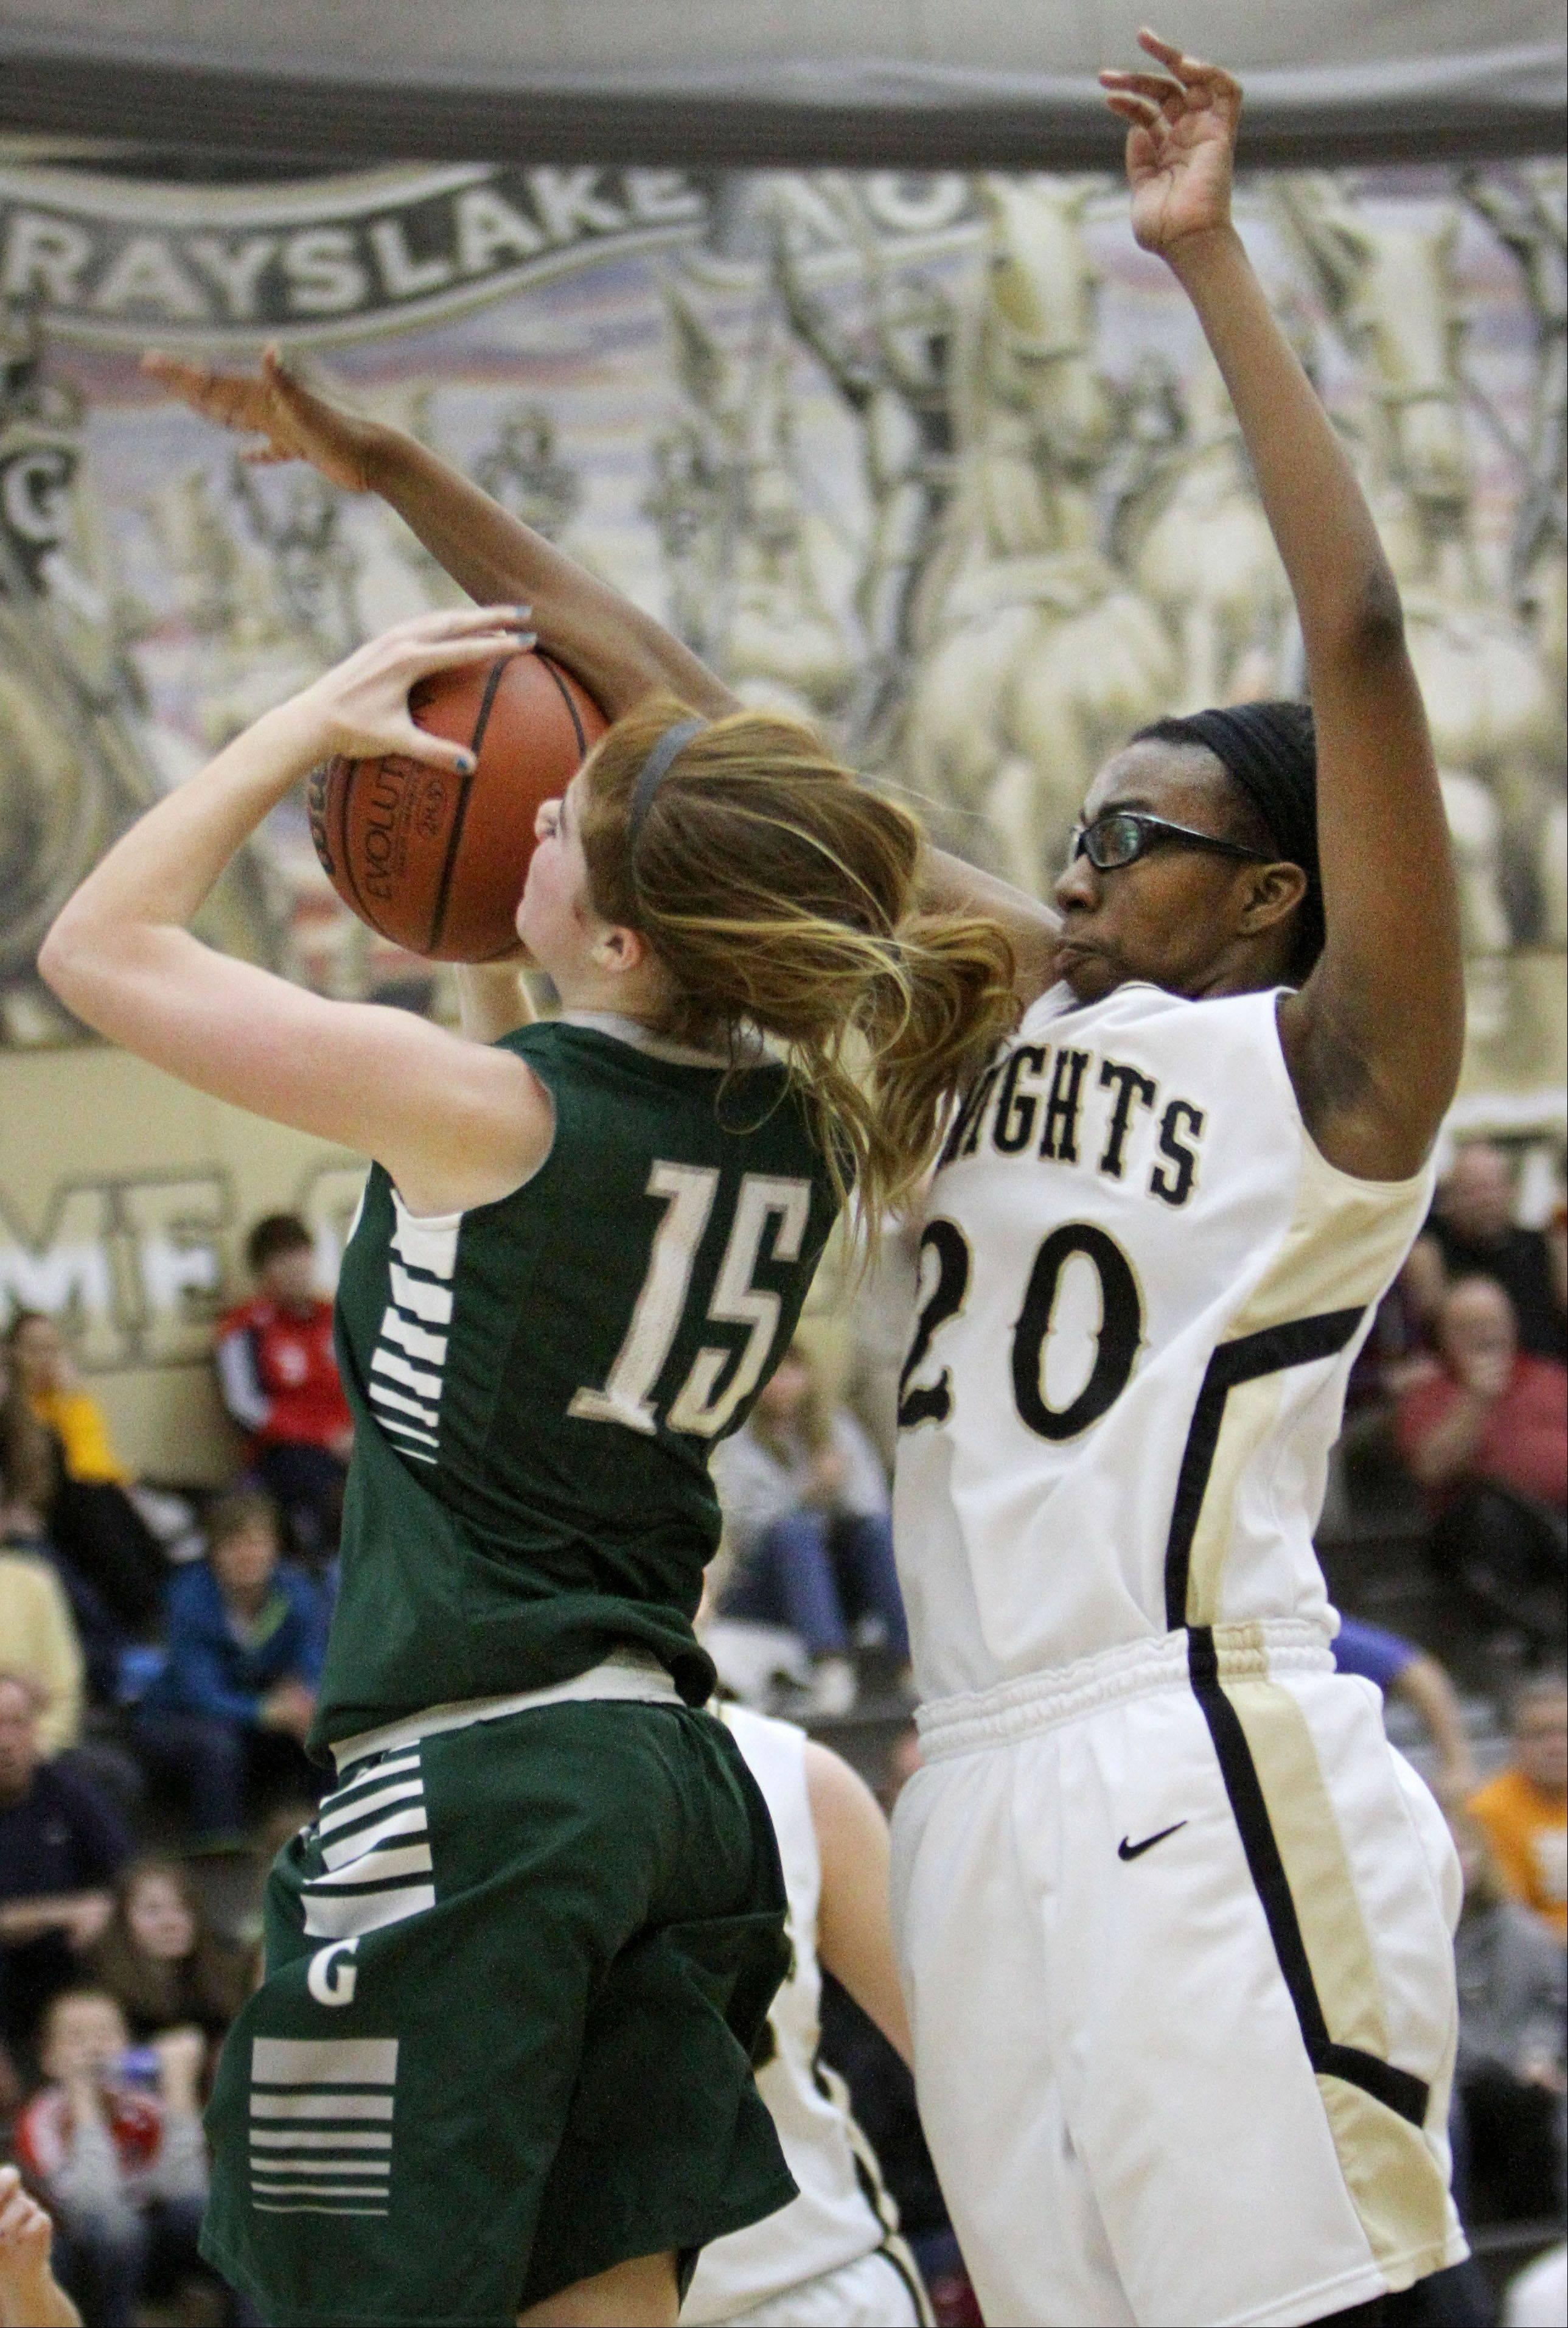 Grayslake Central's Lauren Spaulding, left, drives on Grayslake North's Brittany Thibeaux on Wednesday night at Grayslake North.